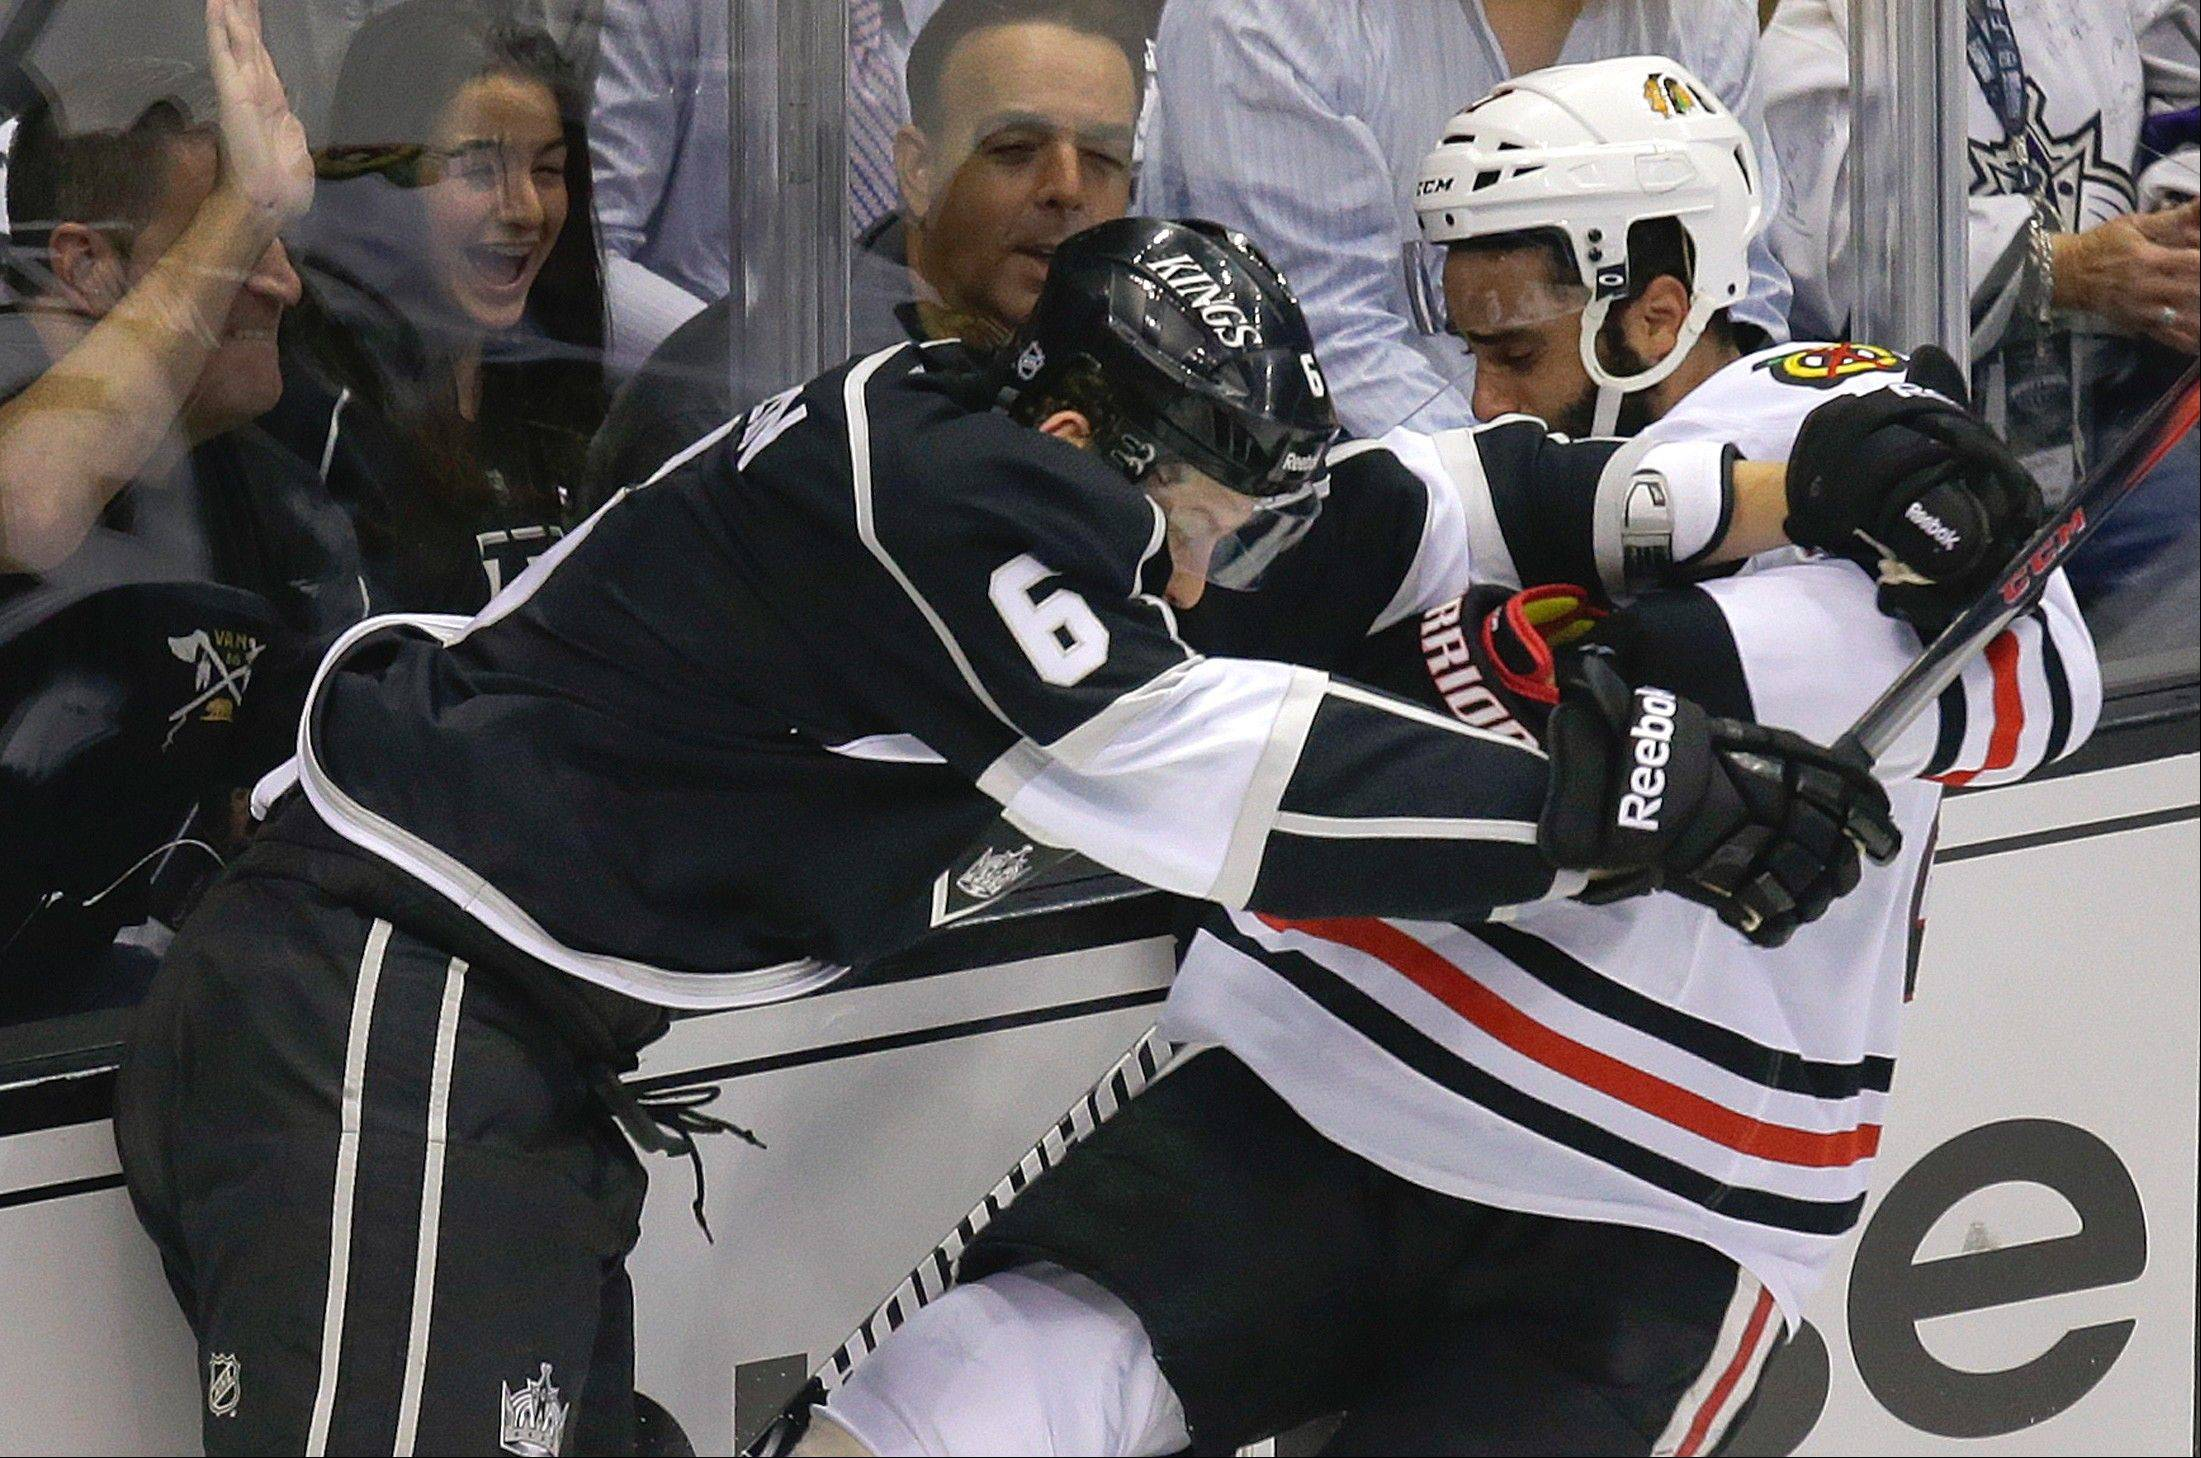 Los Angeles Kings defenseman Jake Muzzin shoves Blackhawks defenseman Johnny Oduya during the first period of Game 3 on Tuesday night. The Kings won 3-1.